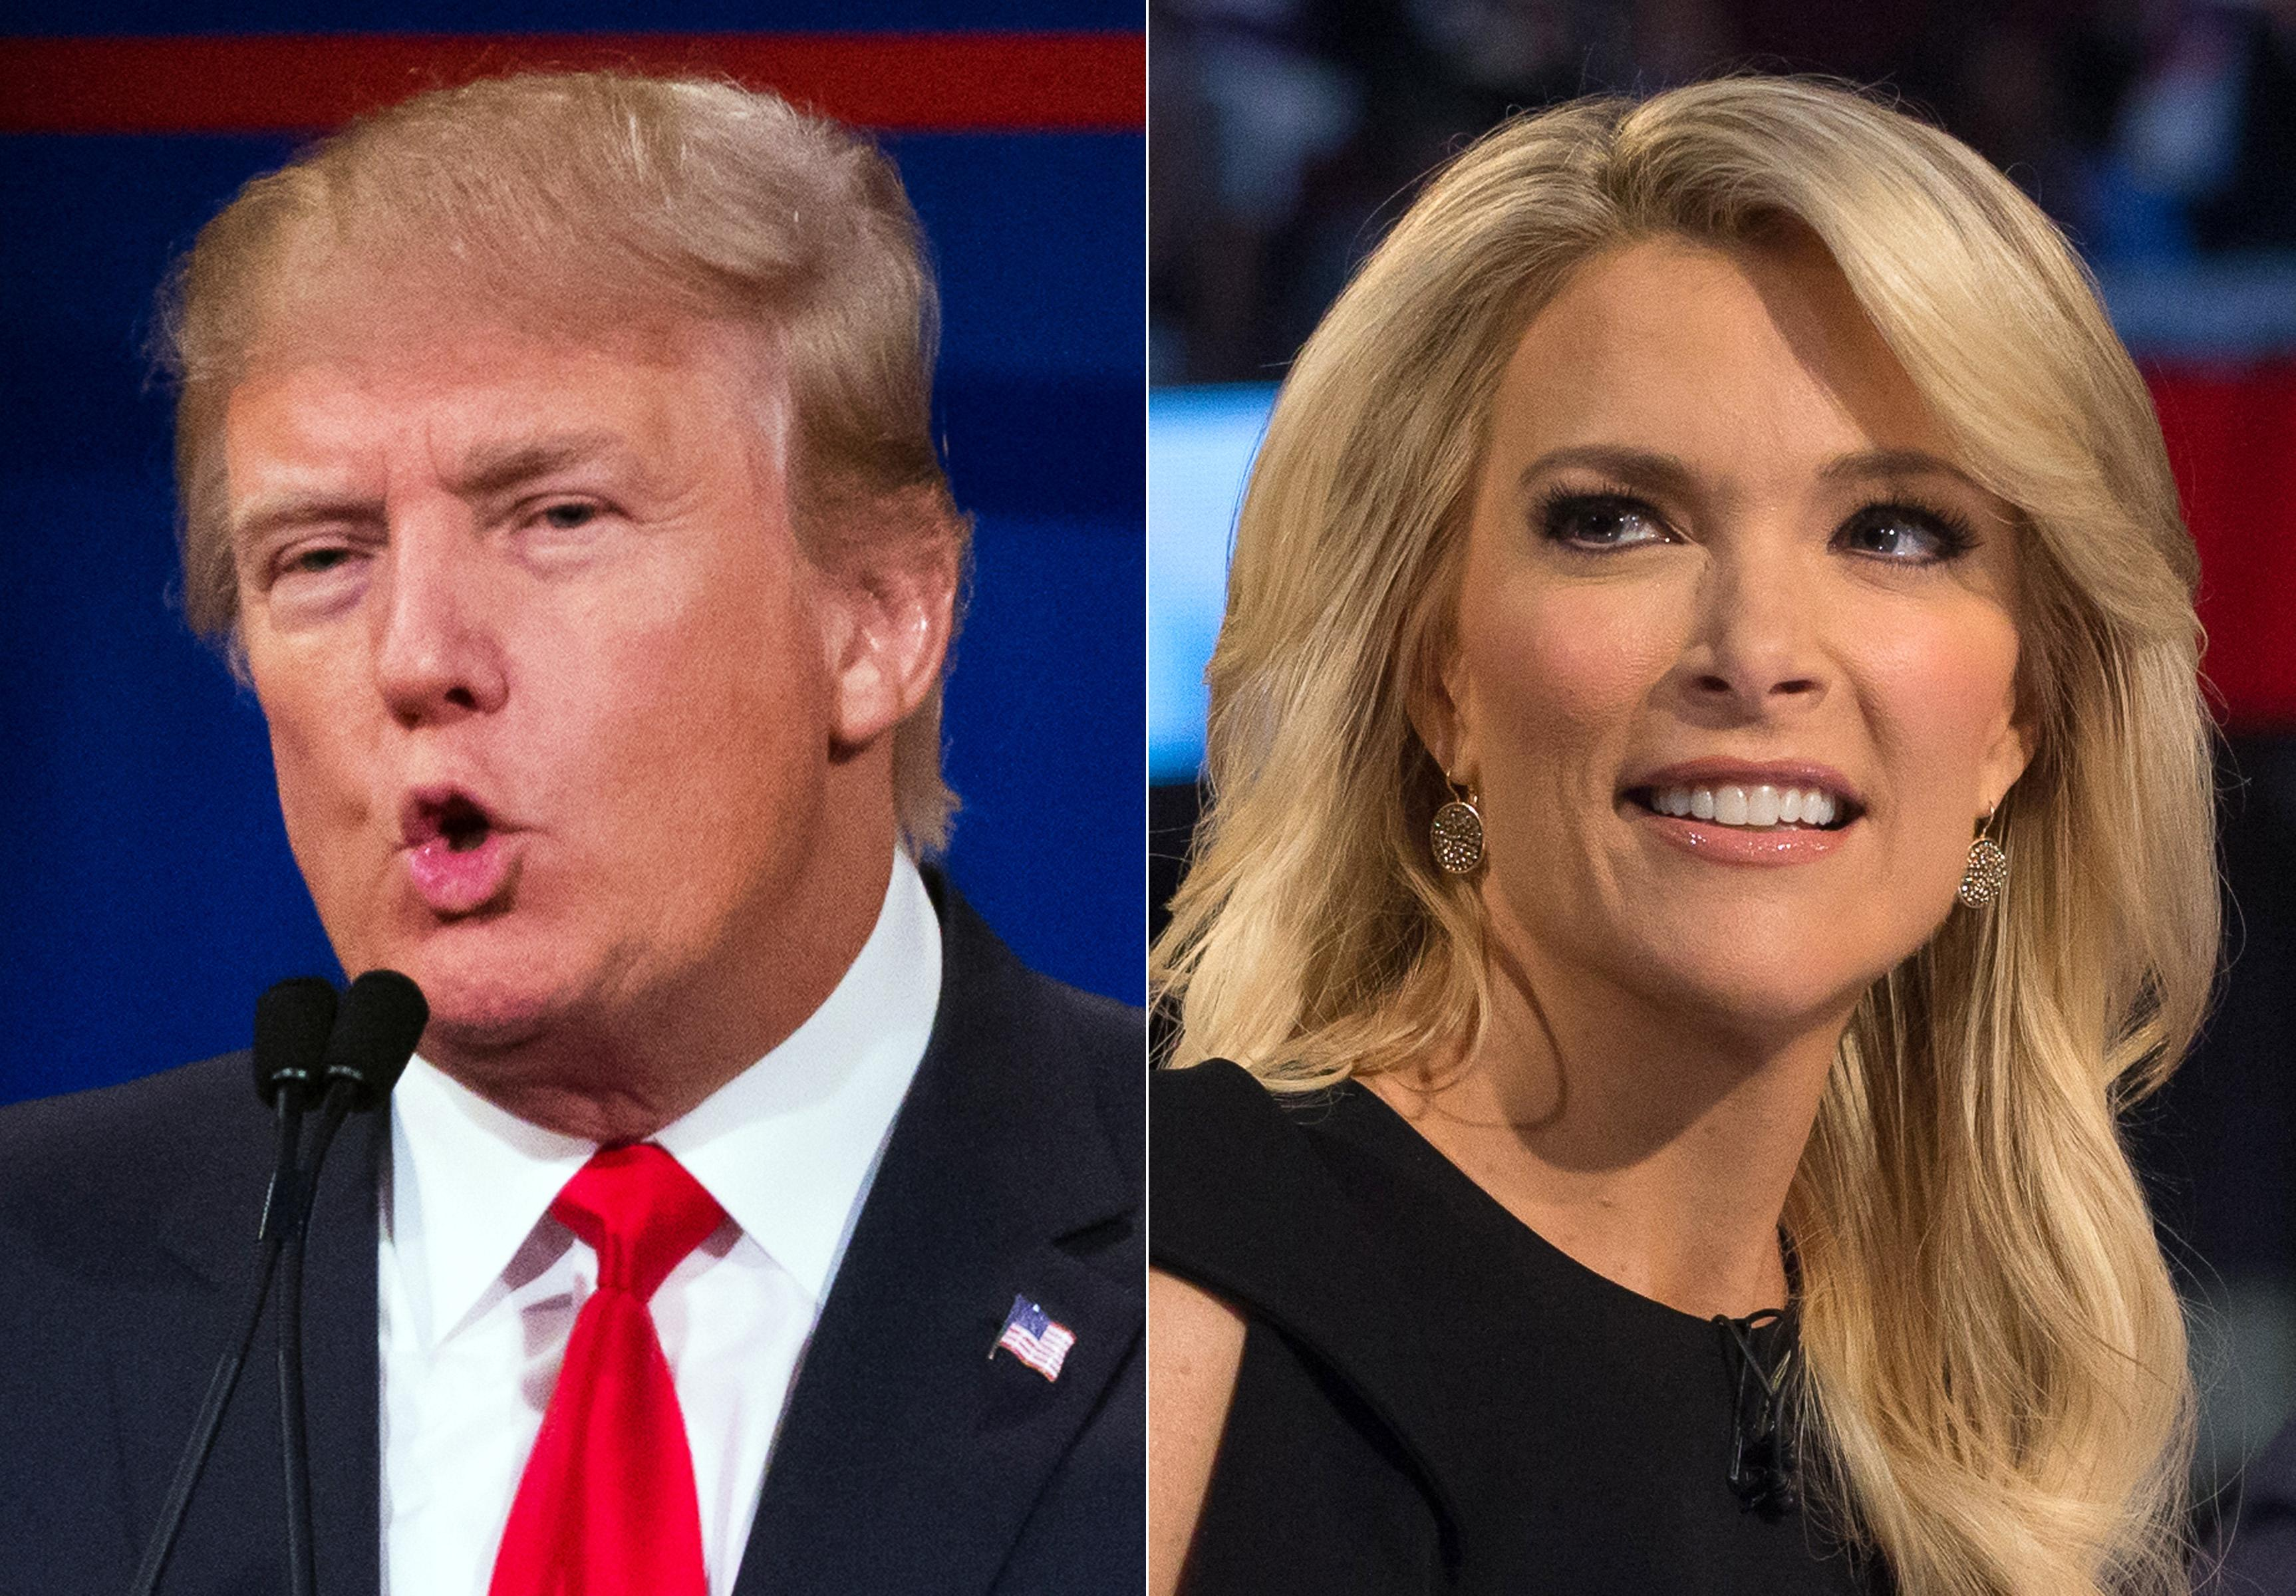 Fox News still holds the ratings record for a political debate